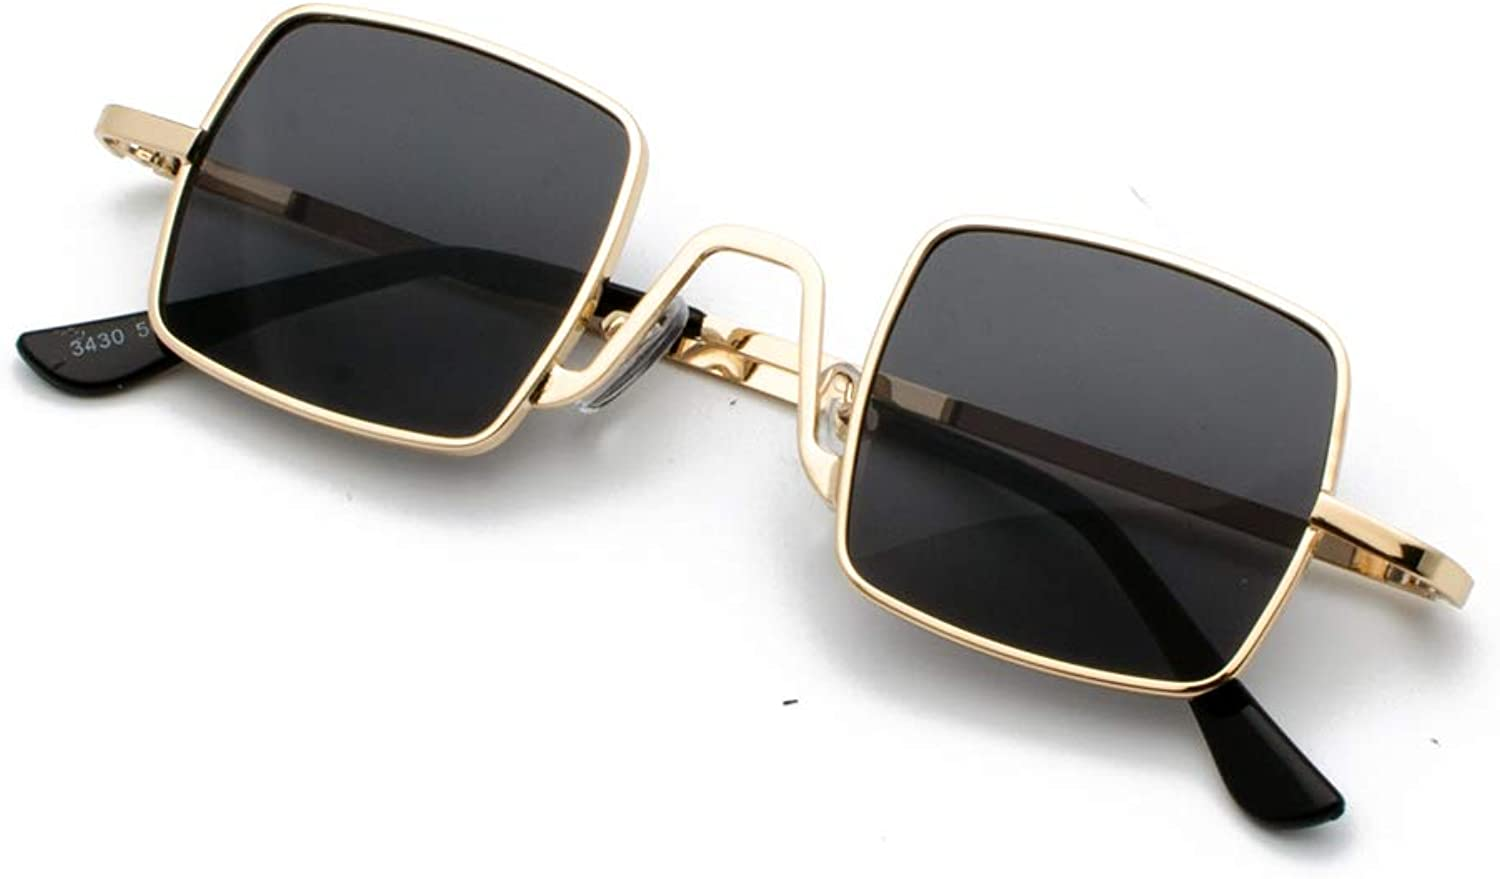 AAMOUSE Sunglasses Square Sunglasses Retro Style for Women red gold Small Black, Sunglasses for Men Metal, Clear Lens, Medium Frame